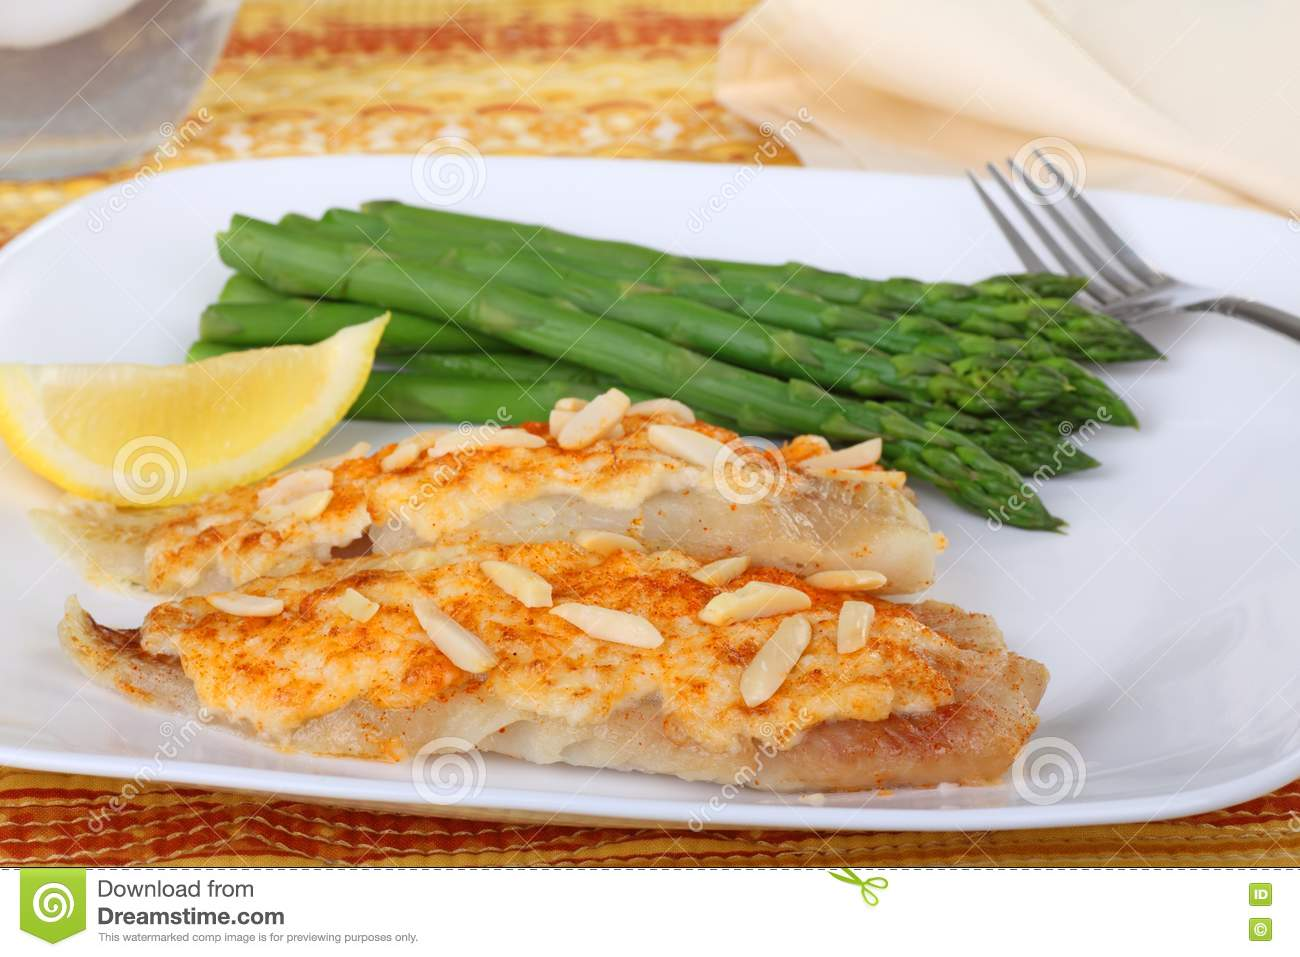 Fish fillets and asparagus royalty free stock images for Fish and asparagus